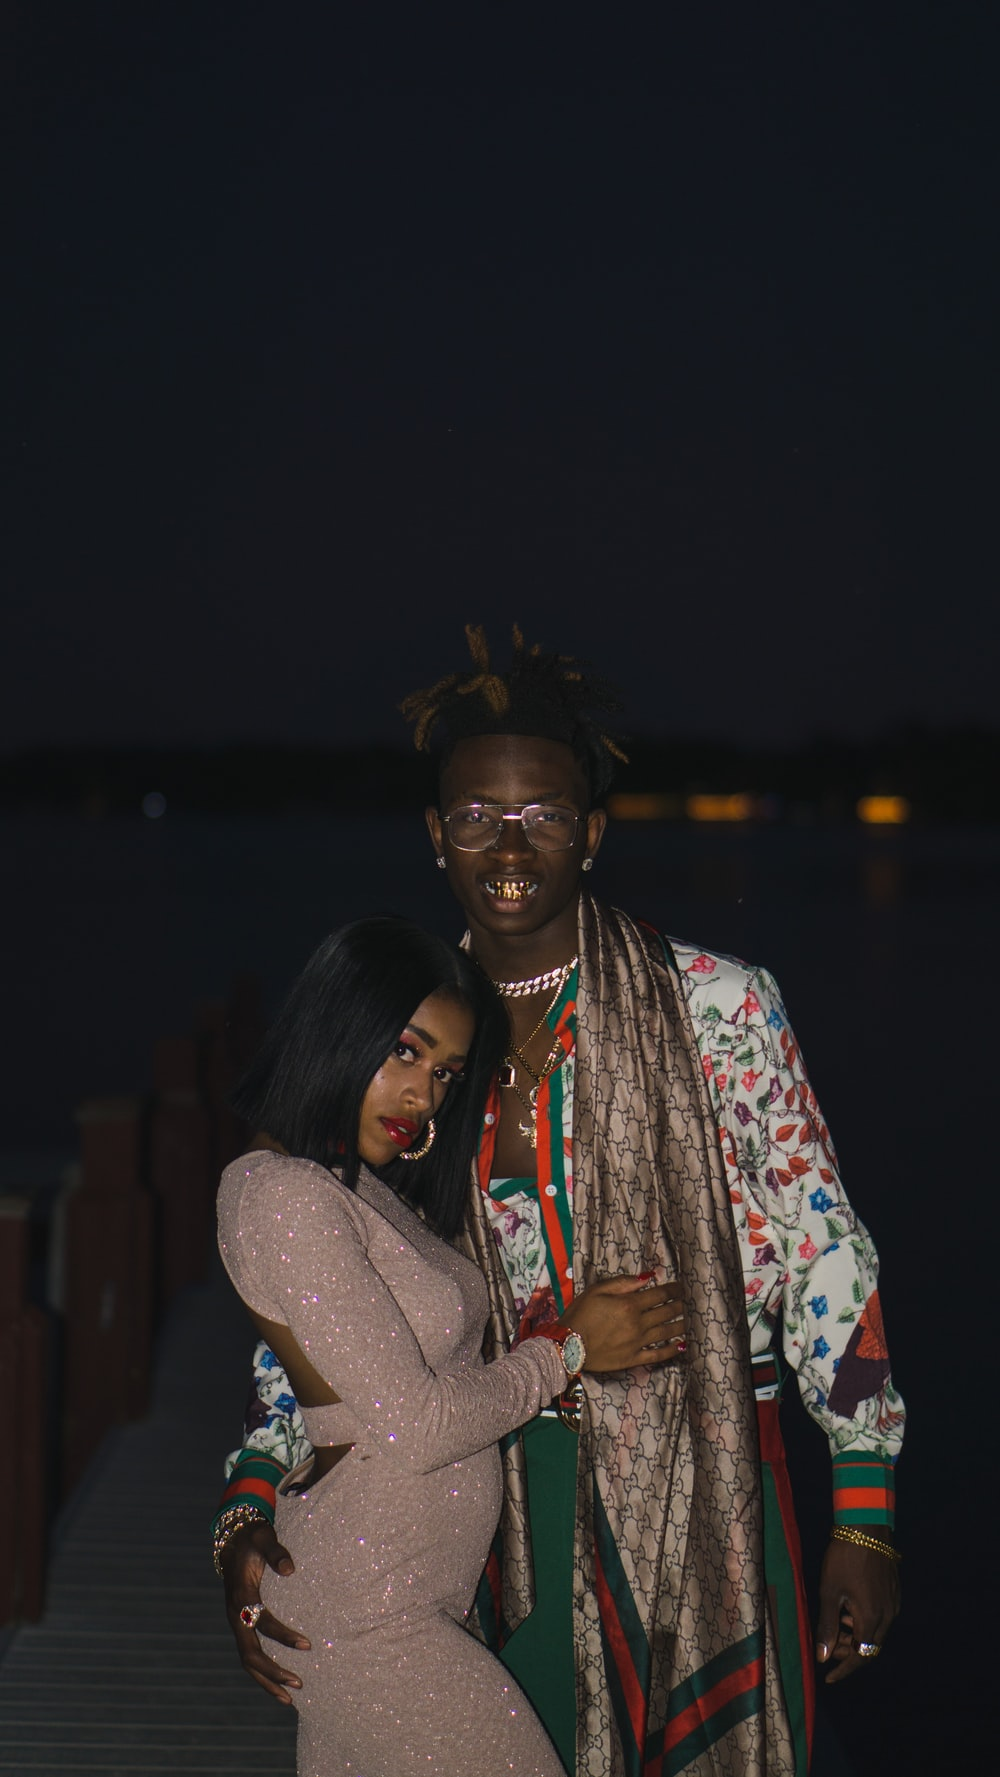 woman standing beside man during night time